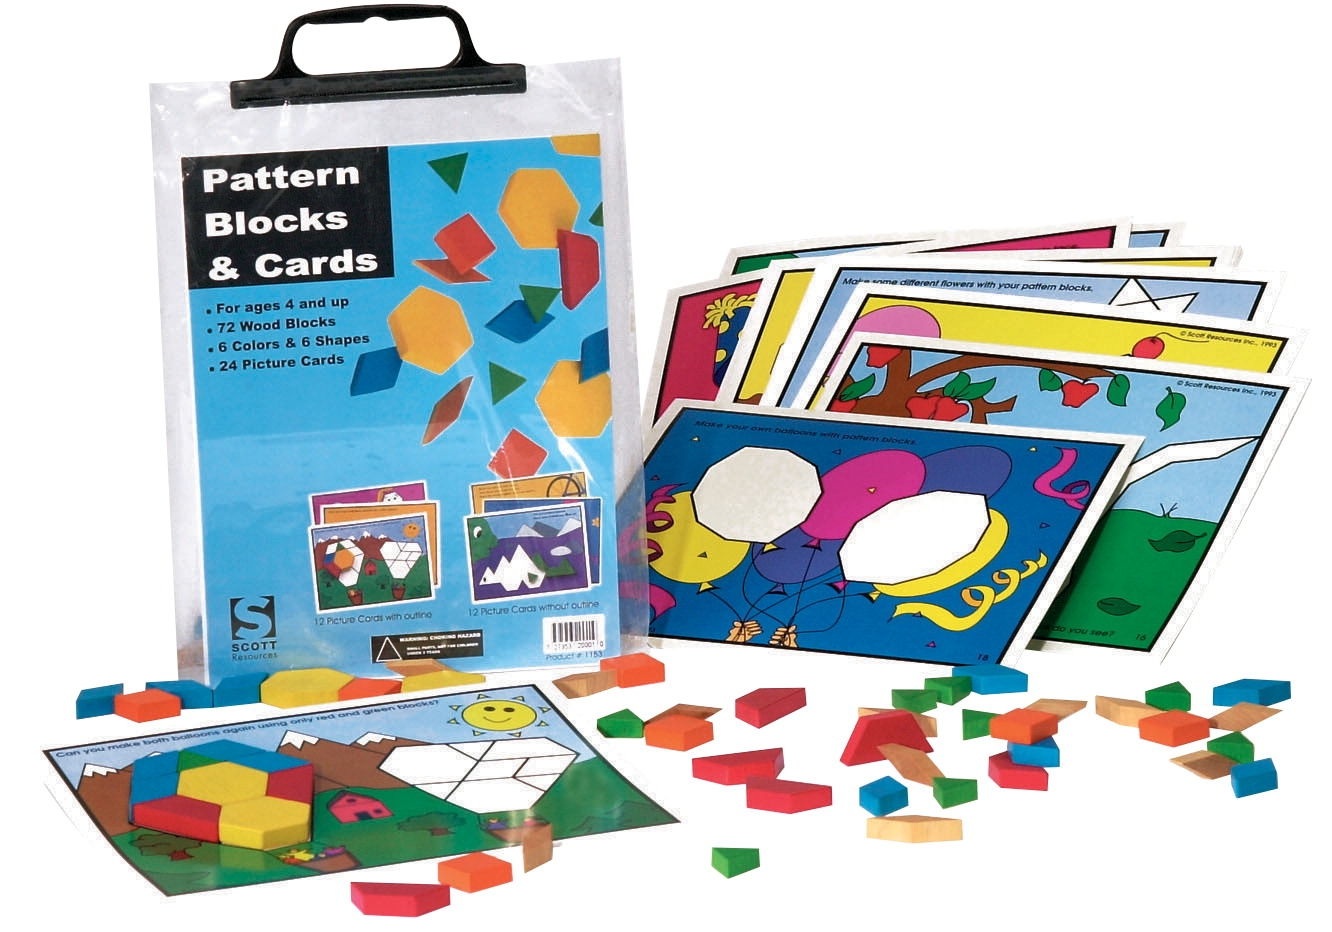 Scott Resources Pattern Blocks And Card Se - 308596 - Instructional Materials Resources Science Activities Equipment Physical Science Projects Books 308596